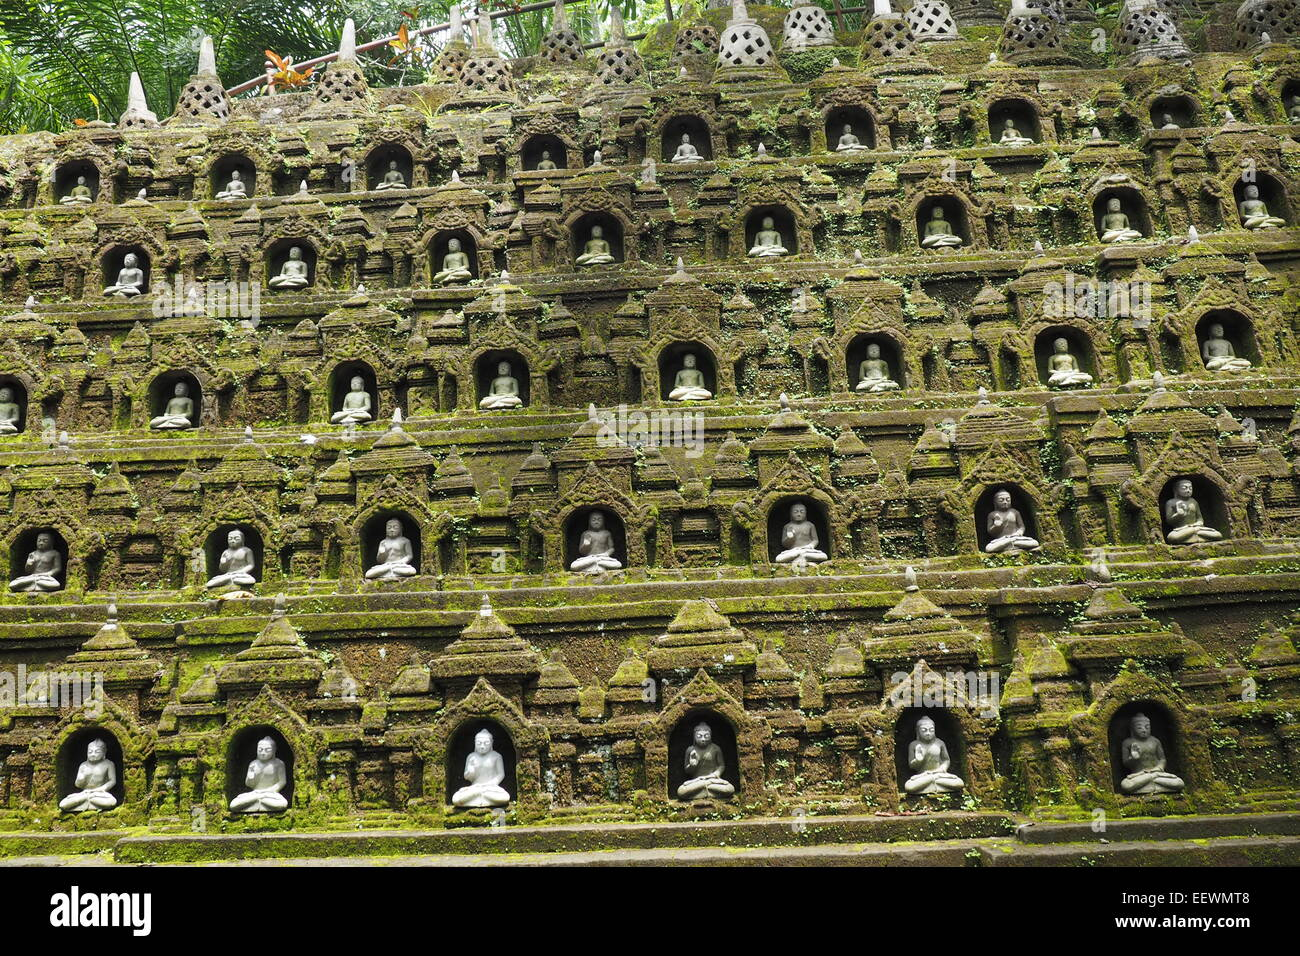 A replication of the  Borobudur Temple at Ayung Resort, Ubud, BAli. - Stock Image